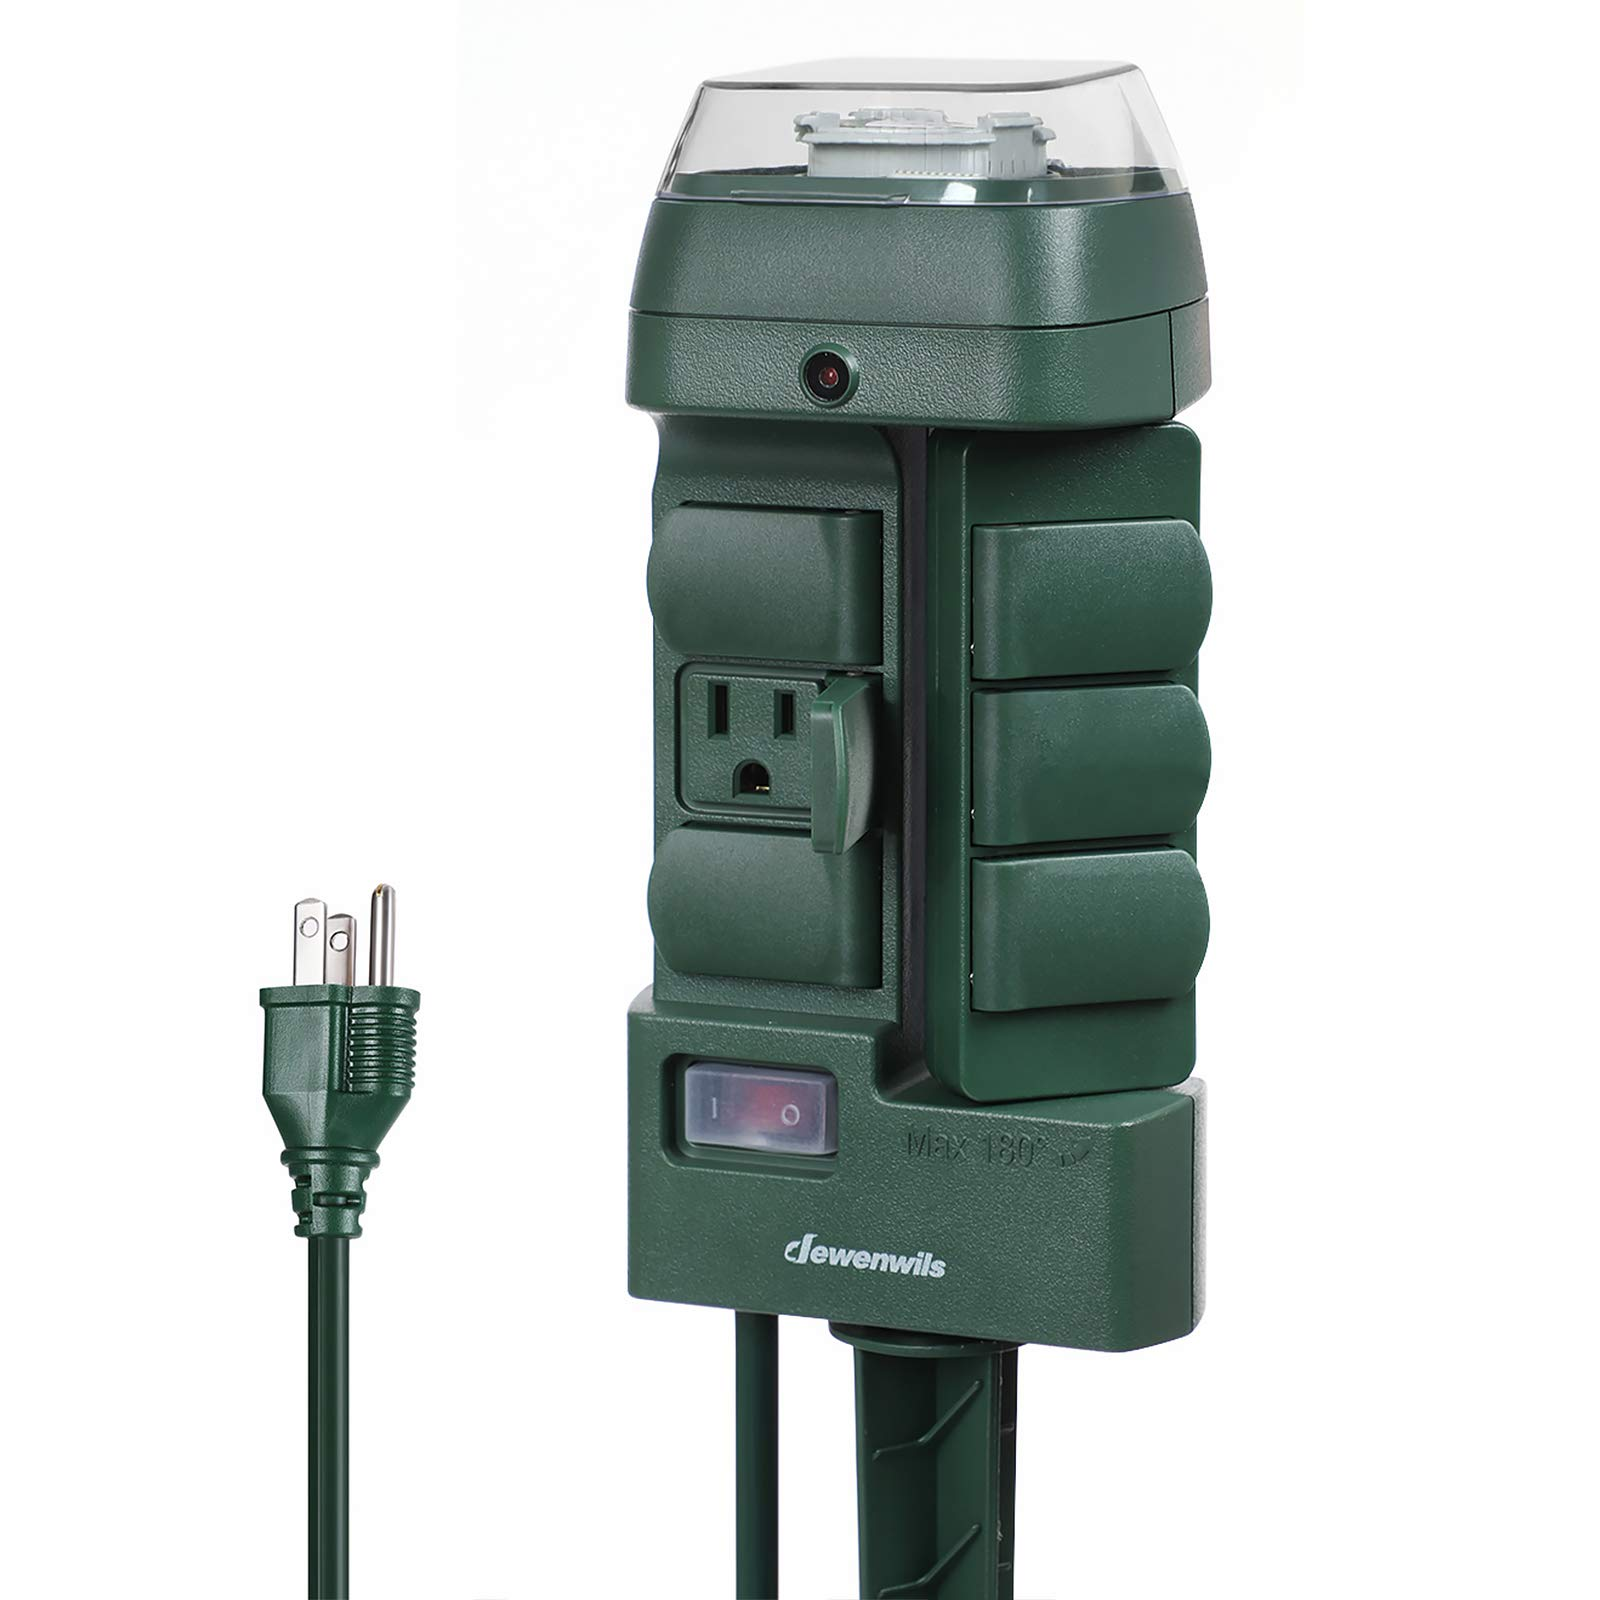 DEWENWILS Outdoor Power Strip Stake Timer, Weatherproof Outlet Plug Timer with 6 Grounded (3 180 Degree Rotating Outlets) 6 ft Extension Cord for Yard Electrical Outlets, 13A UL Listed by DEWENWILS